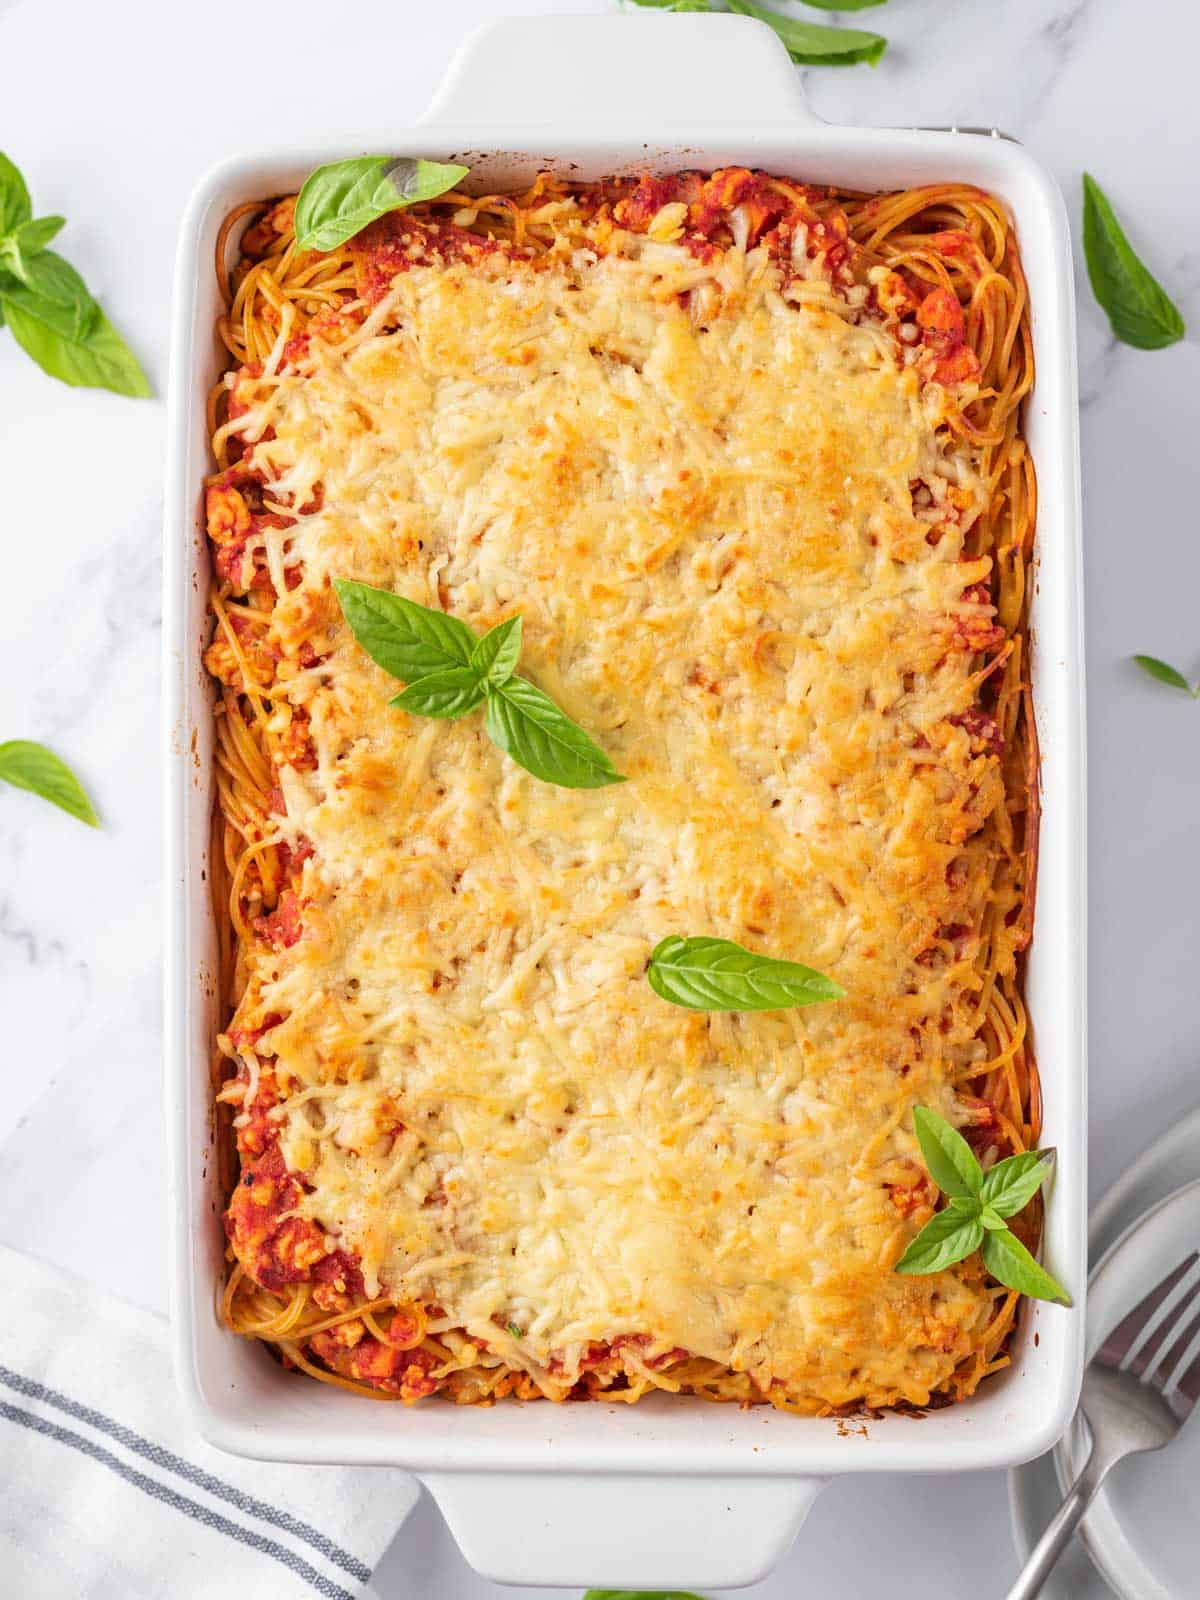 Easy Spaghetti Pasta Bake after cooking, topped with basil leaves.